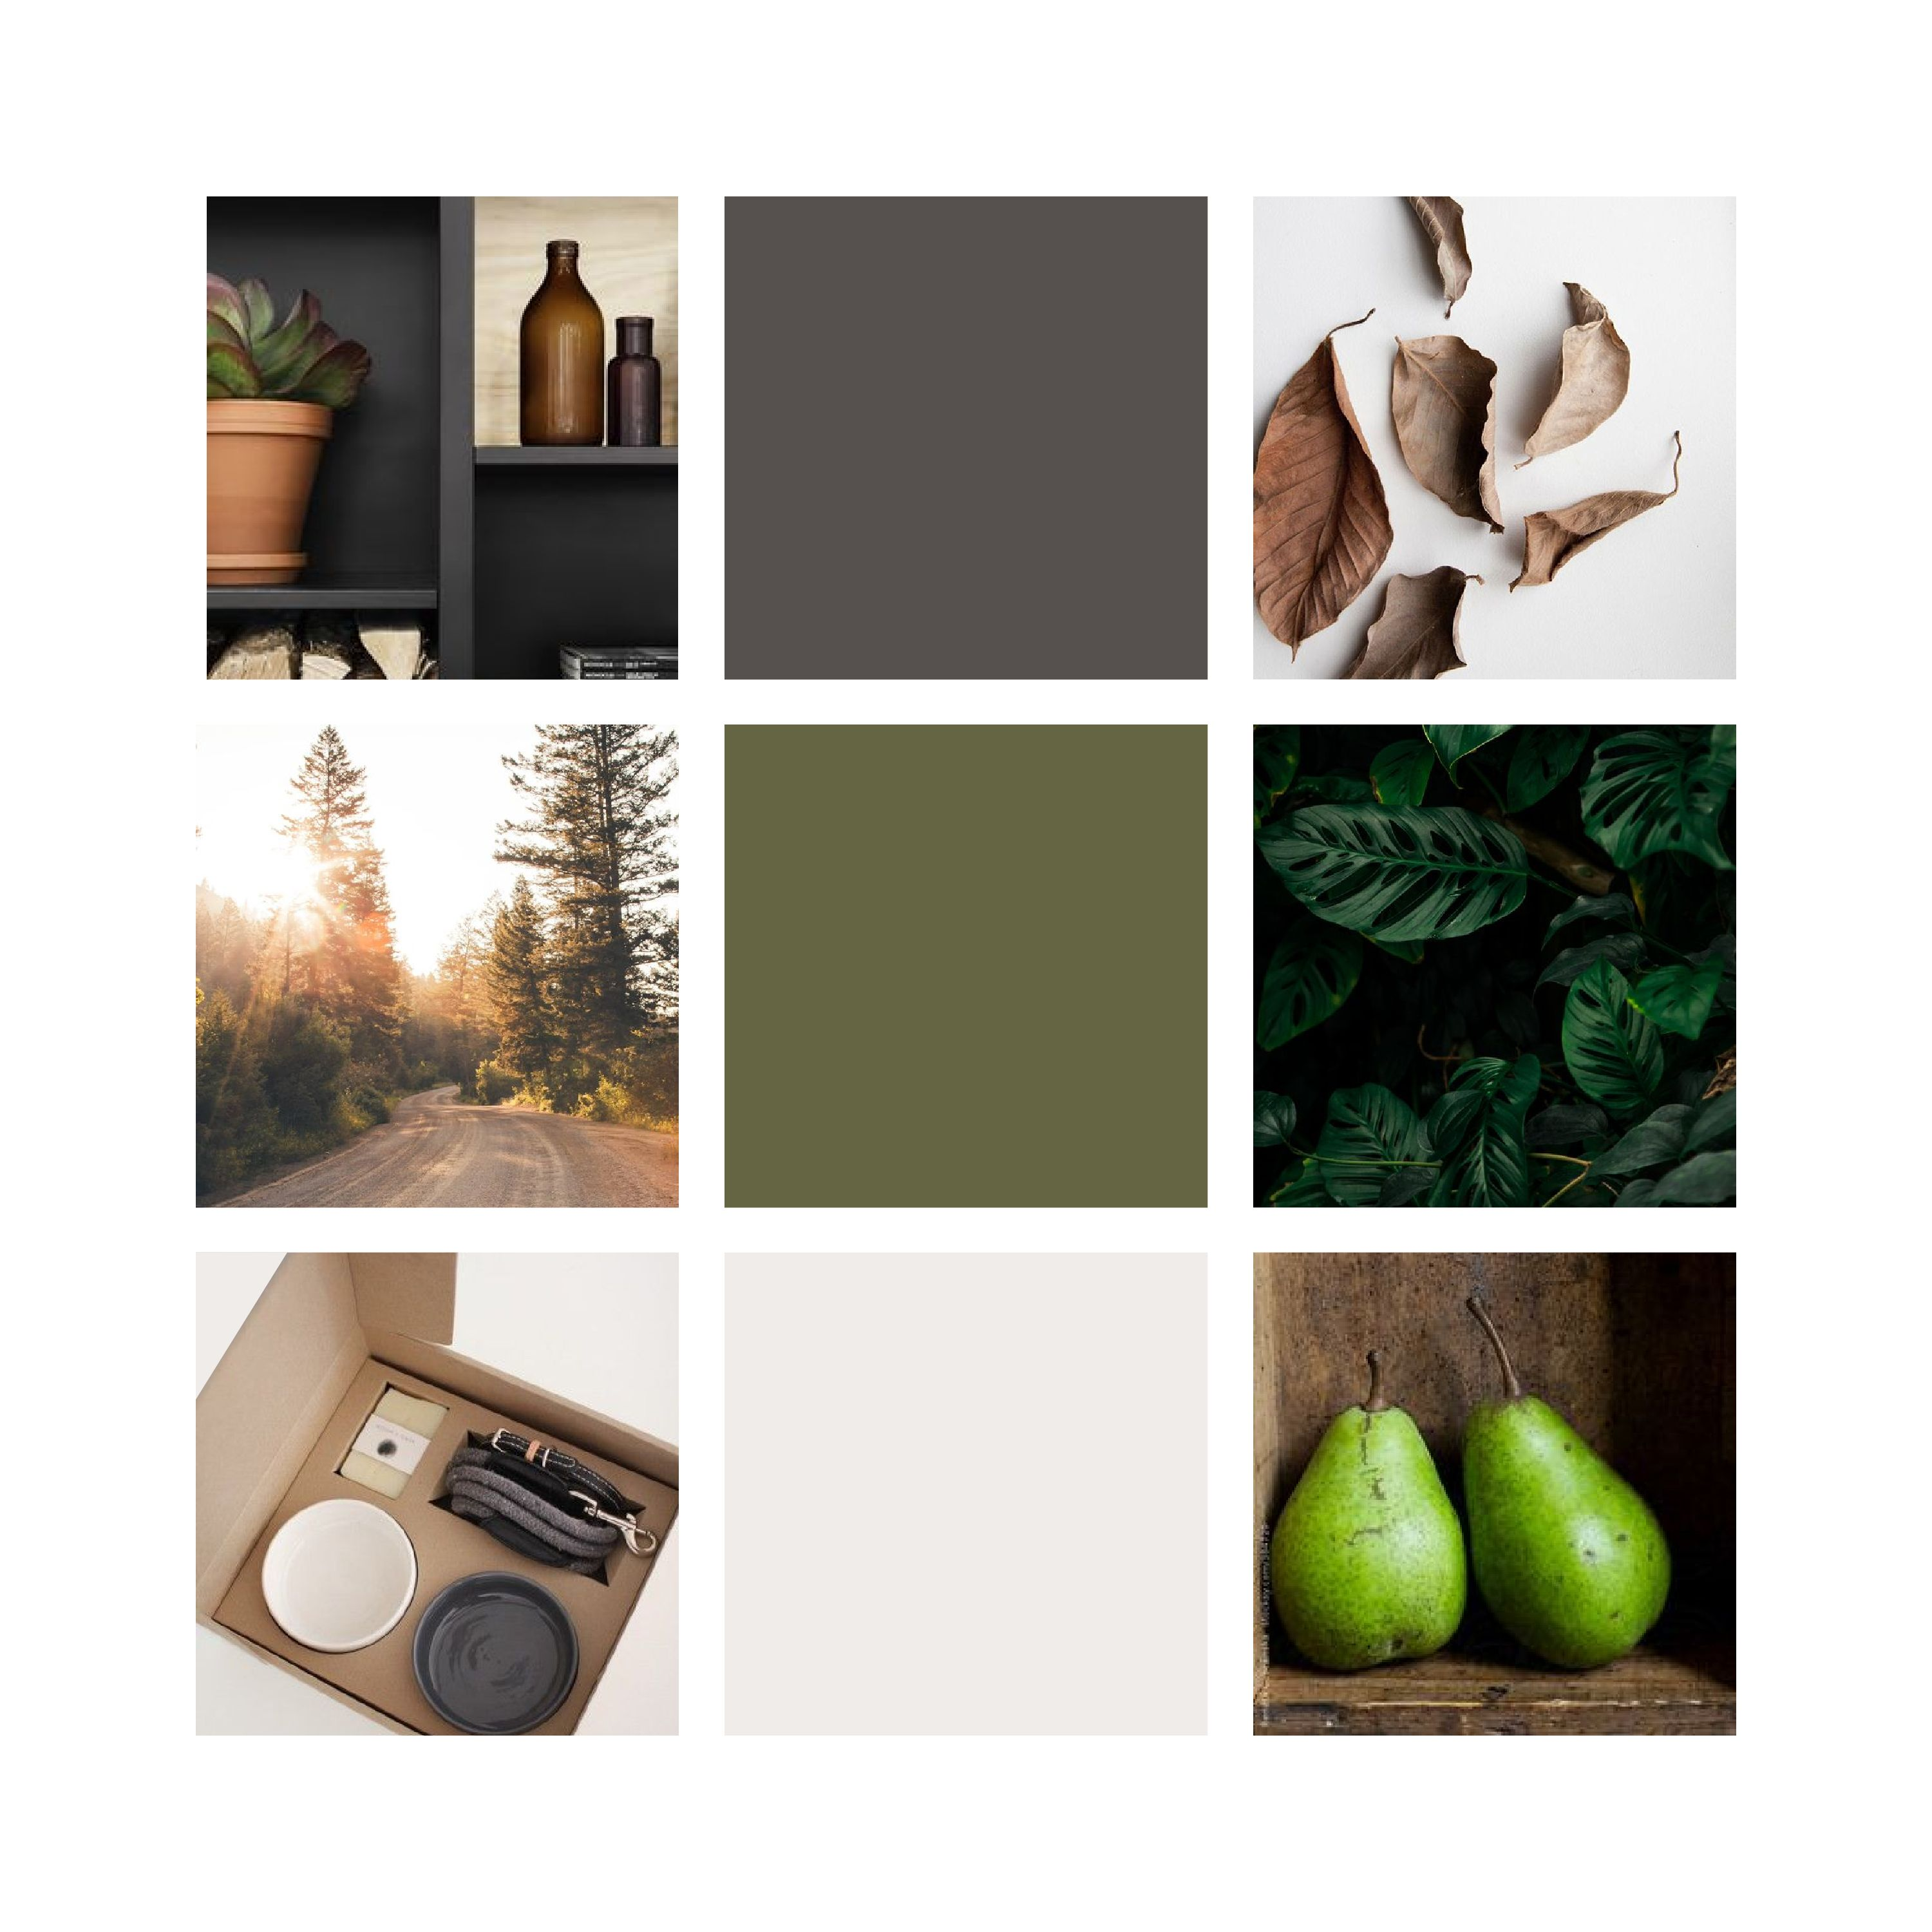 Moody rustic moodboard design by Assimilation Designs.  www.instagram.com/assimilationdesigns  #moodboard #moody #rustic #design #branding #style